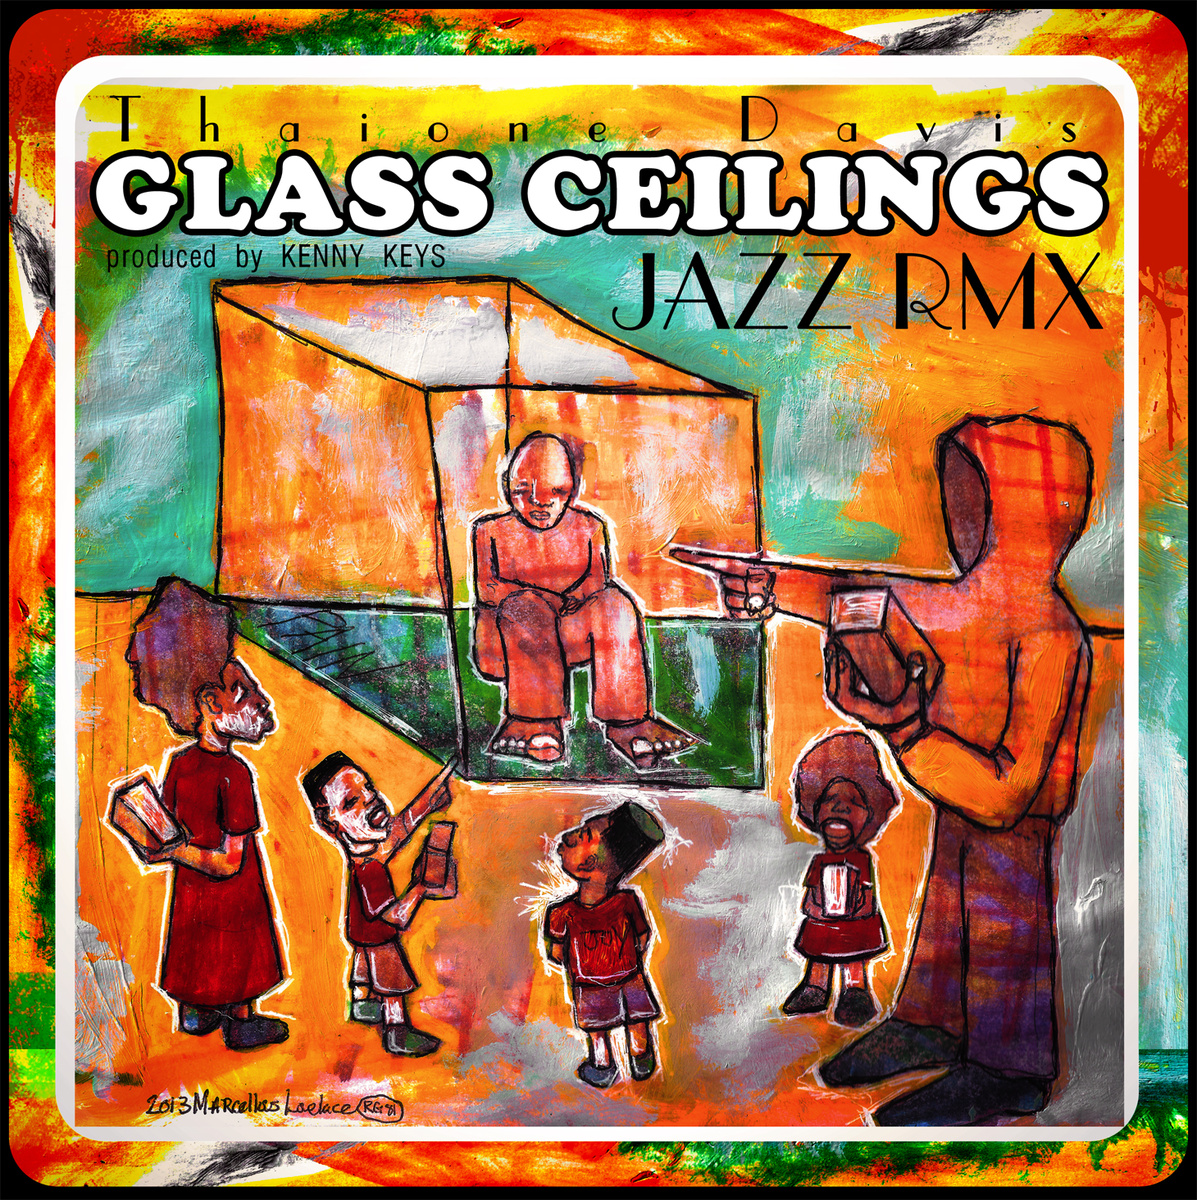 Thaione Davis – Glass Ceilings (Etcetera jazz rmx) prod.by Kenny Keys (Download)